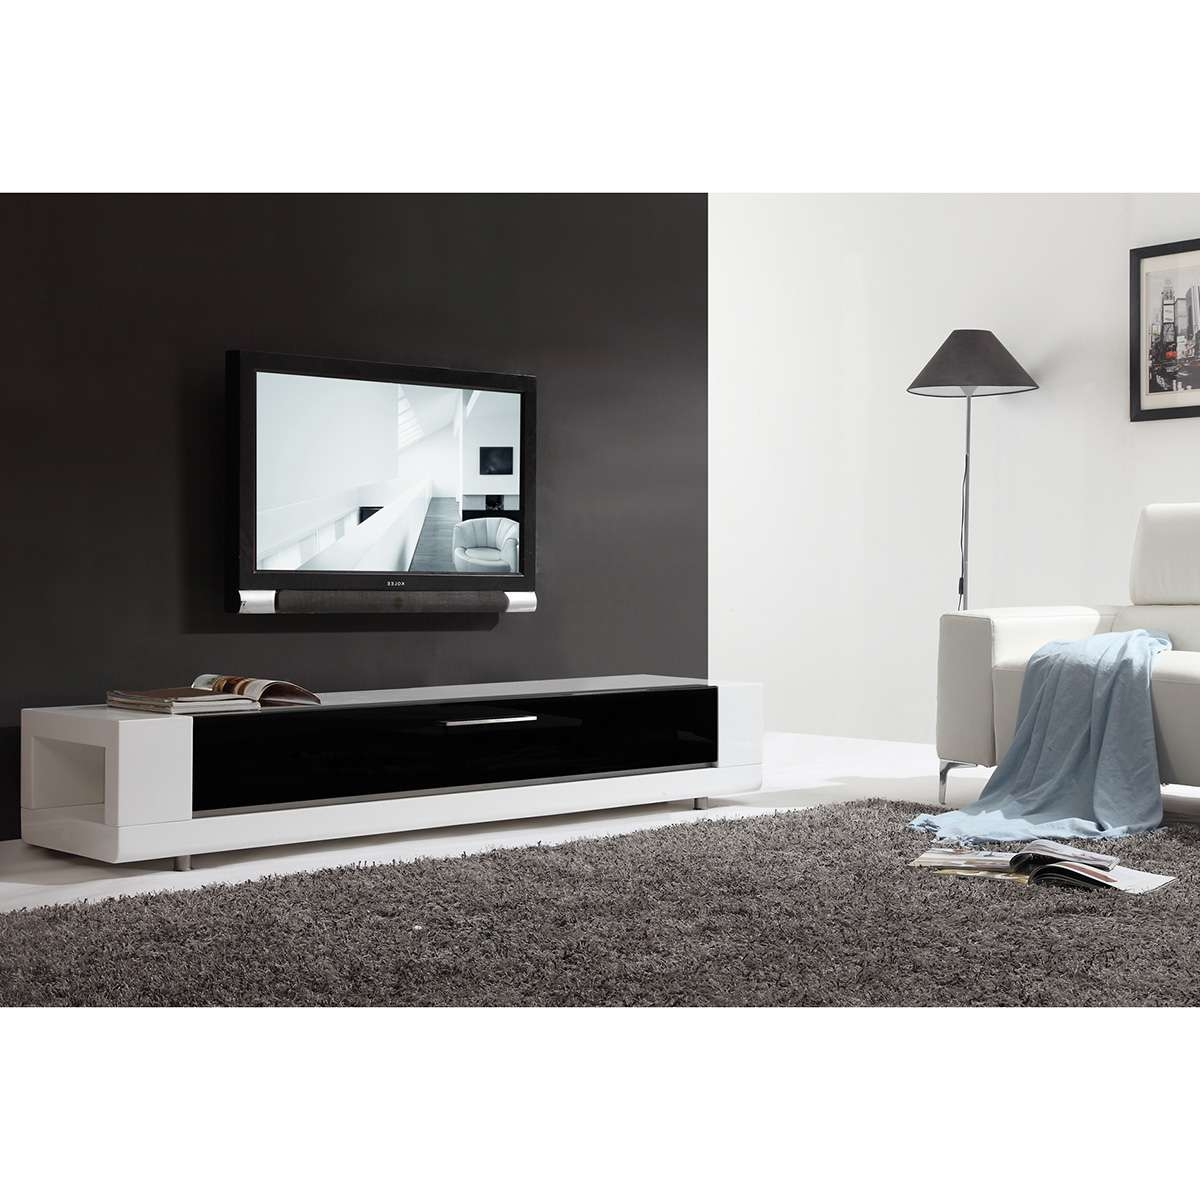 "B Modern Bm 632 Wht Editor Remix 79"" Contemporary Tv Stand In High Throughout Glass Front Tv Stands (View 3 of 20)"